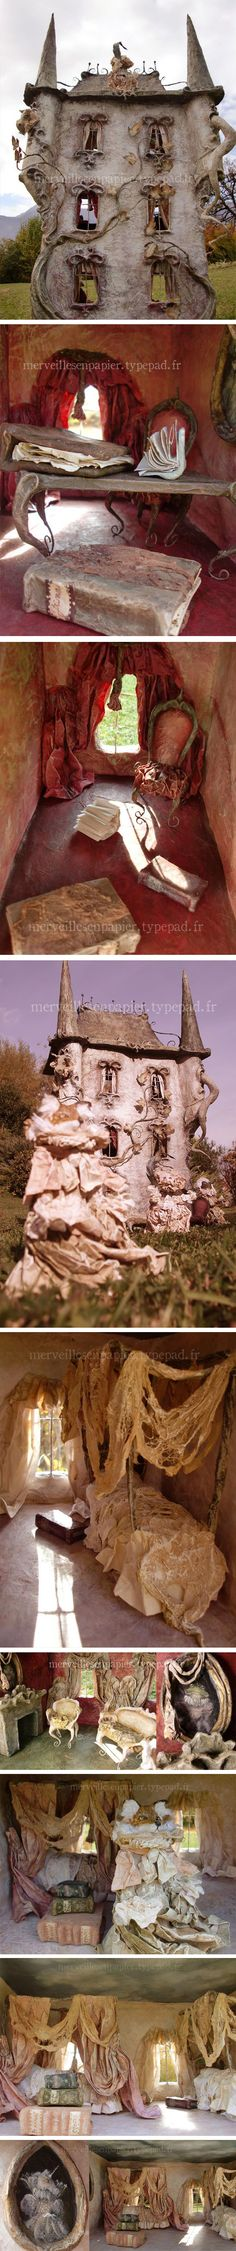 """Laititia Mieral Paper Mache Dollhouse """"Welcome to the haunted or enchanted doll house, This is an """"art toy"""" for children or adults every piece of furniture can be manipulated ,the characters as well , nothing is glued."""" All content copyright © Laititia Mieral See more of this amazing dollhouse: merveillesenpapie..."""